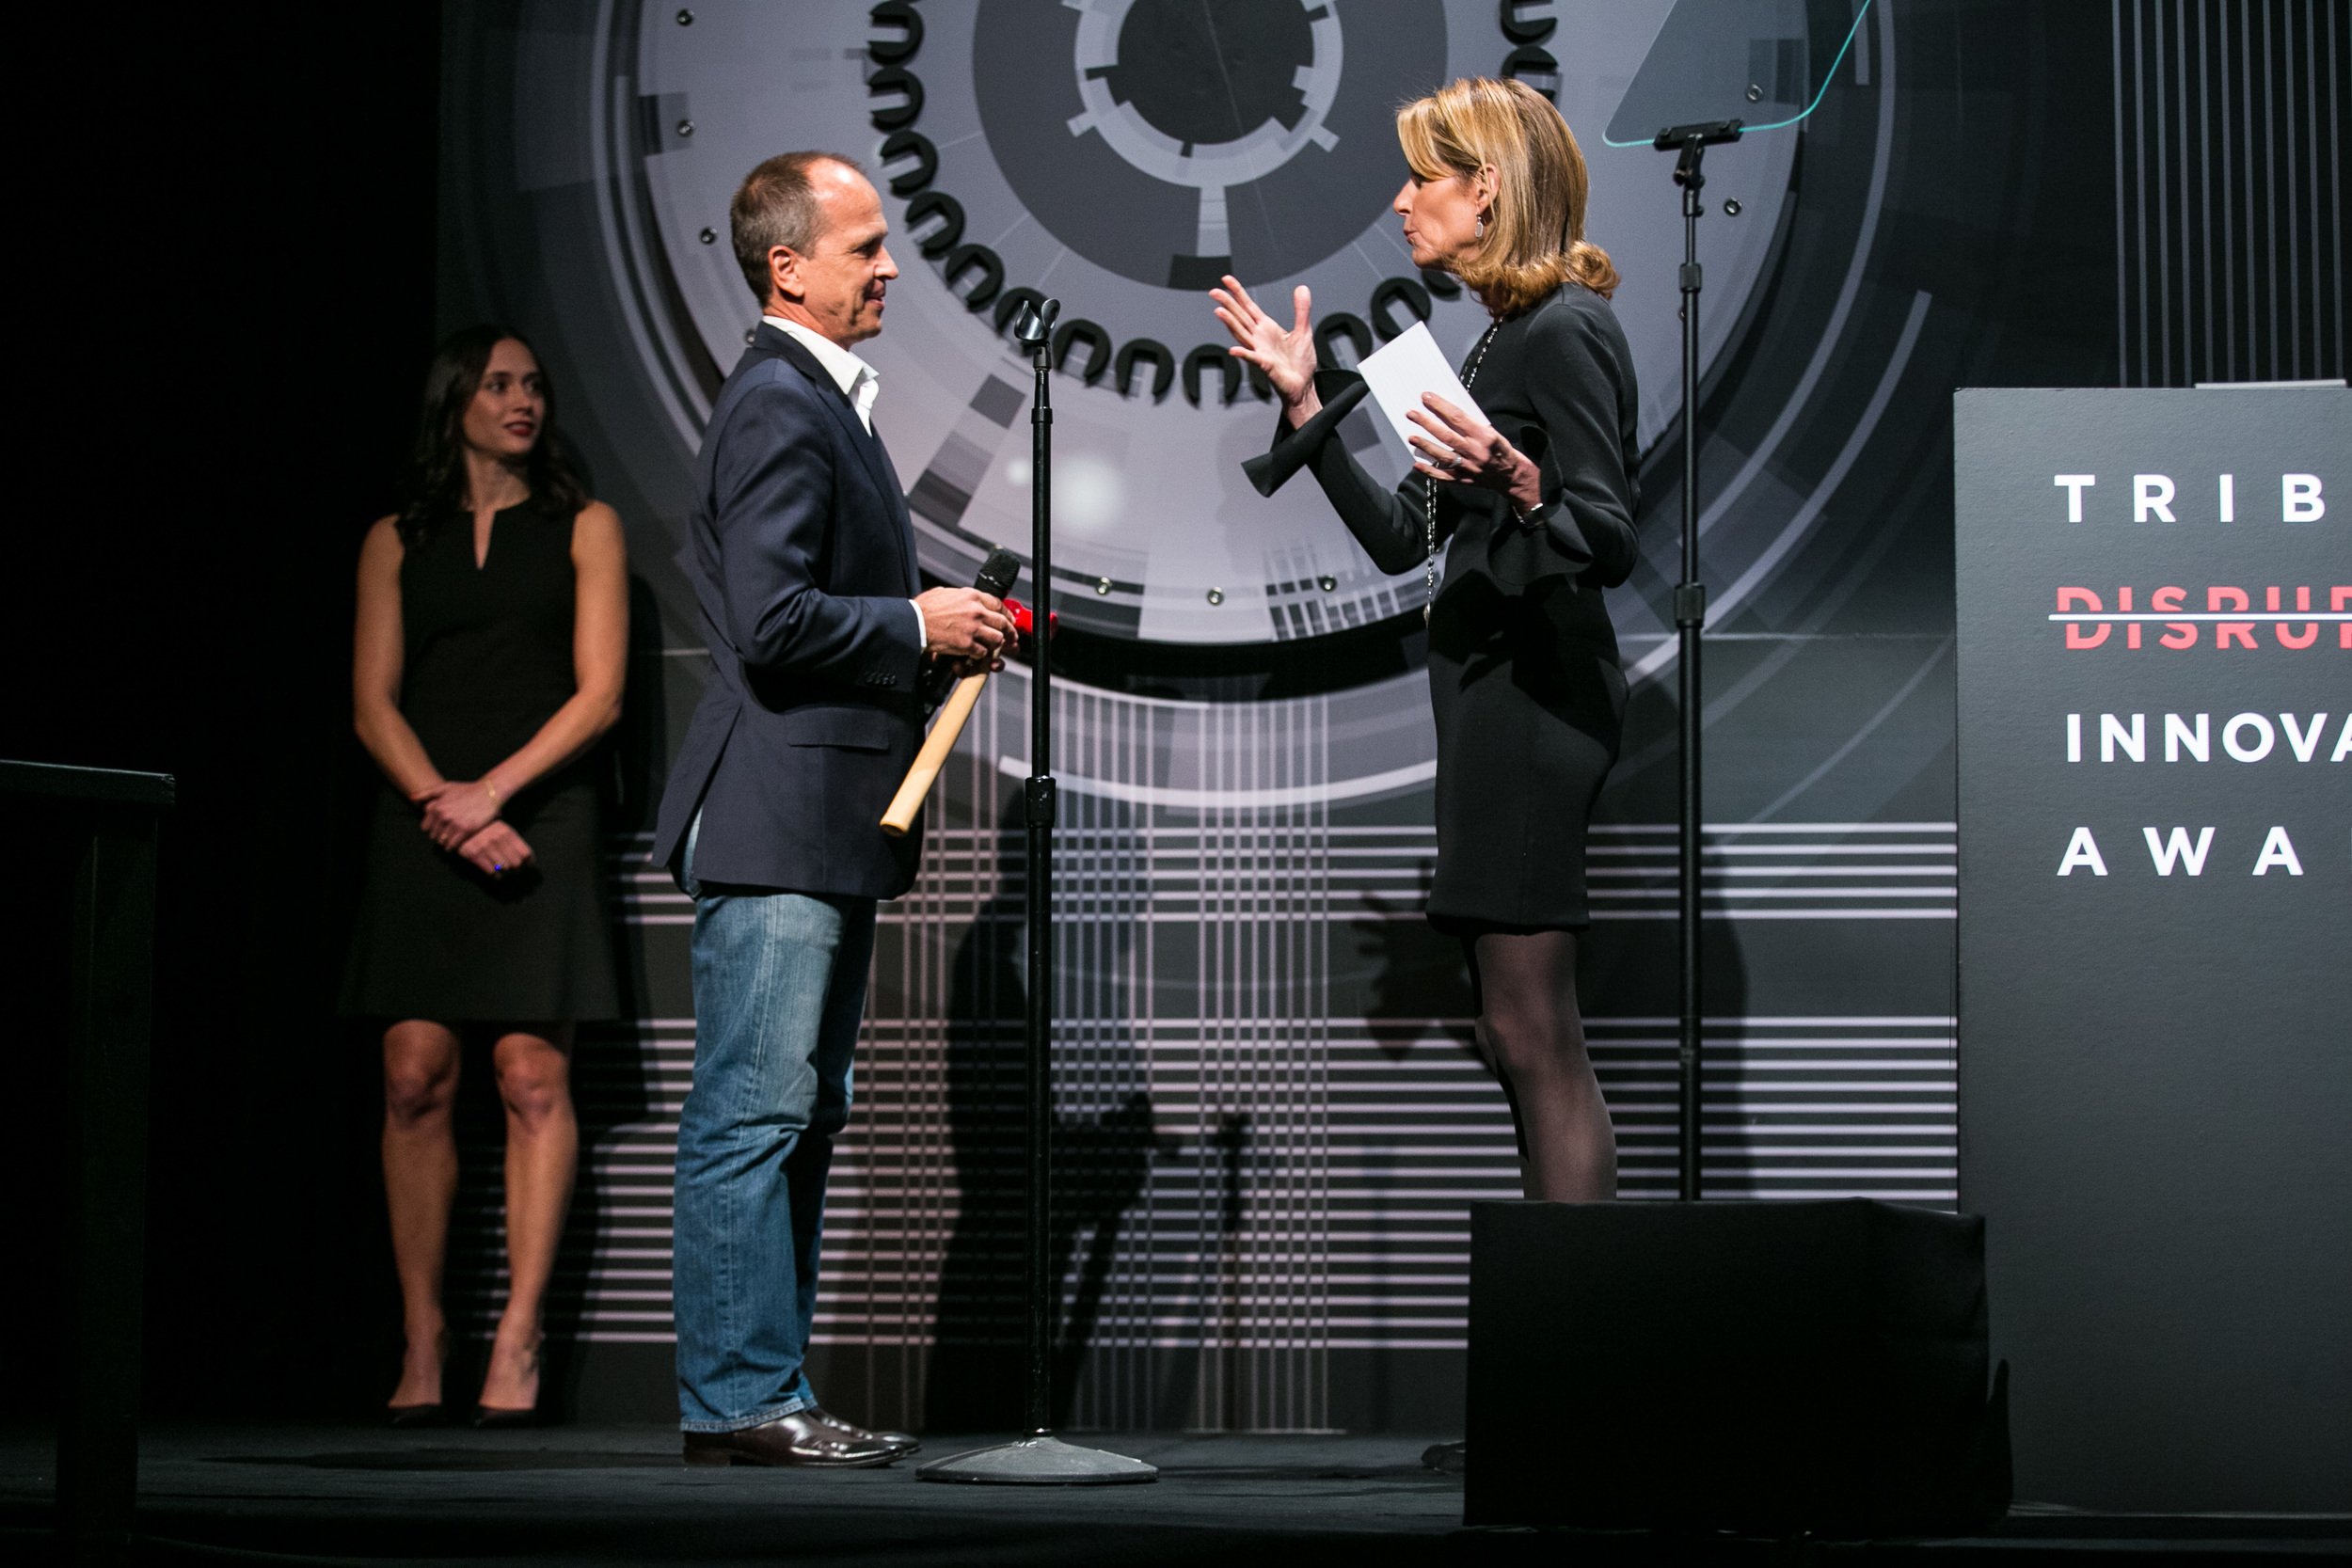 20150424-Tribeca Disruptive Innovation Awards-1297.jpg